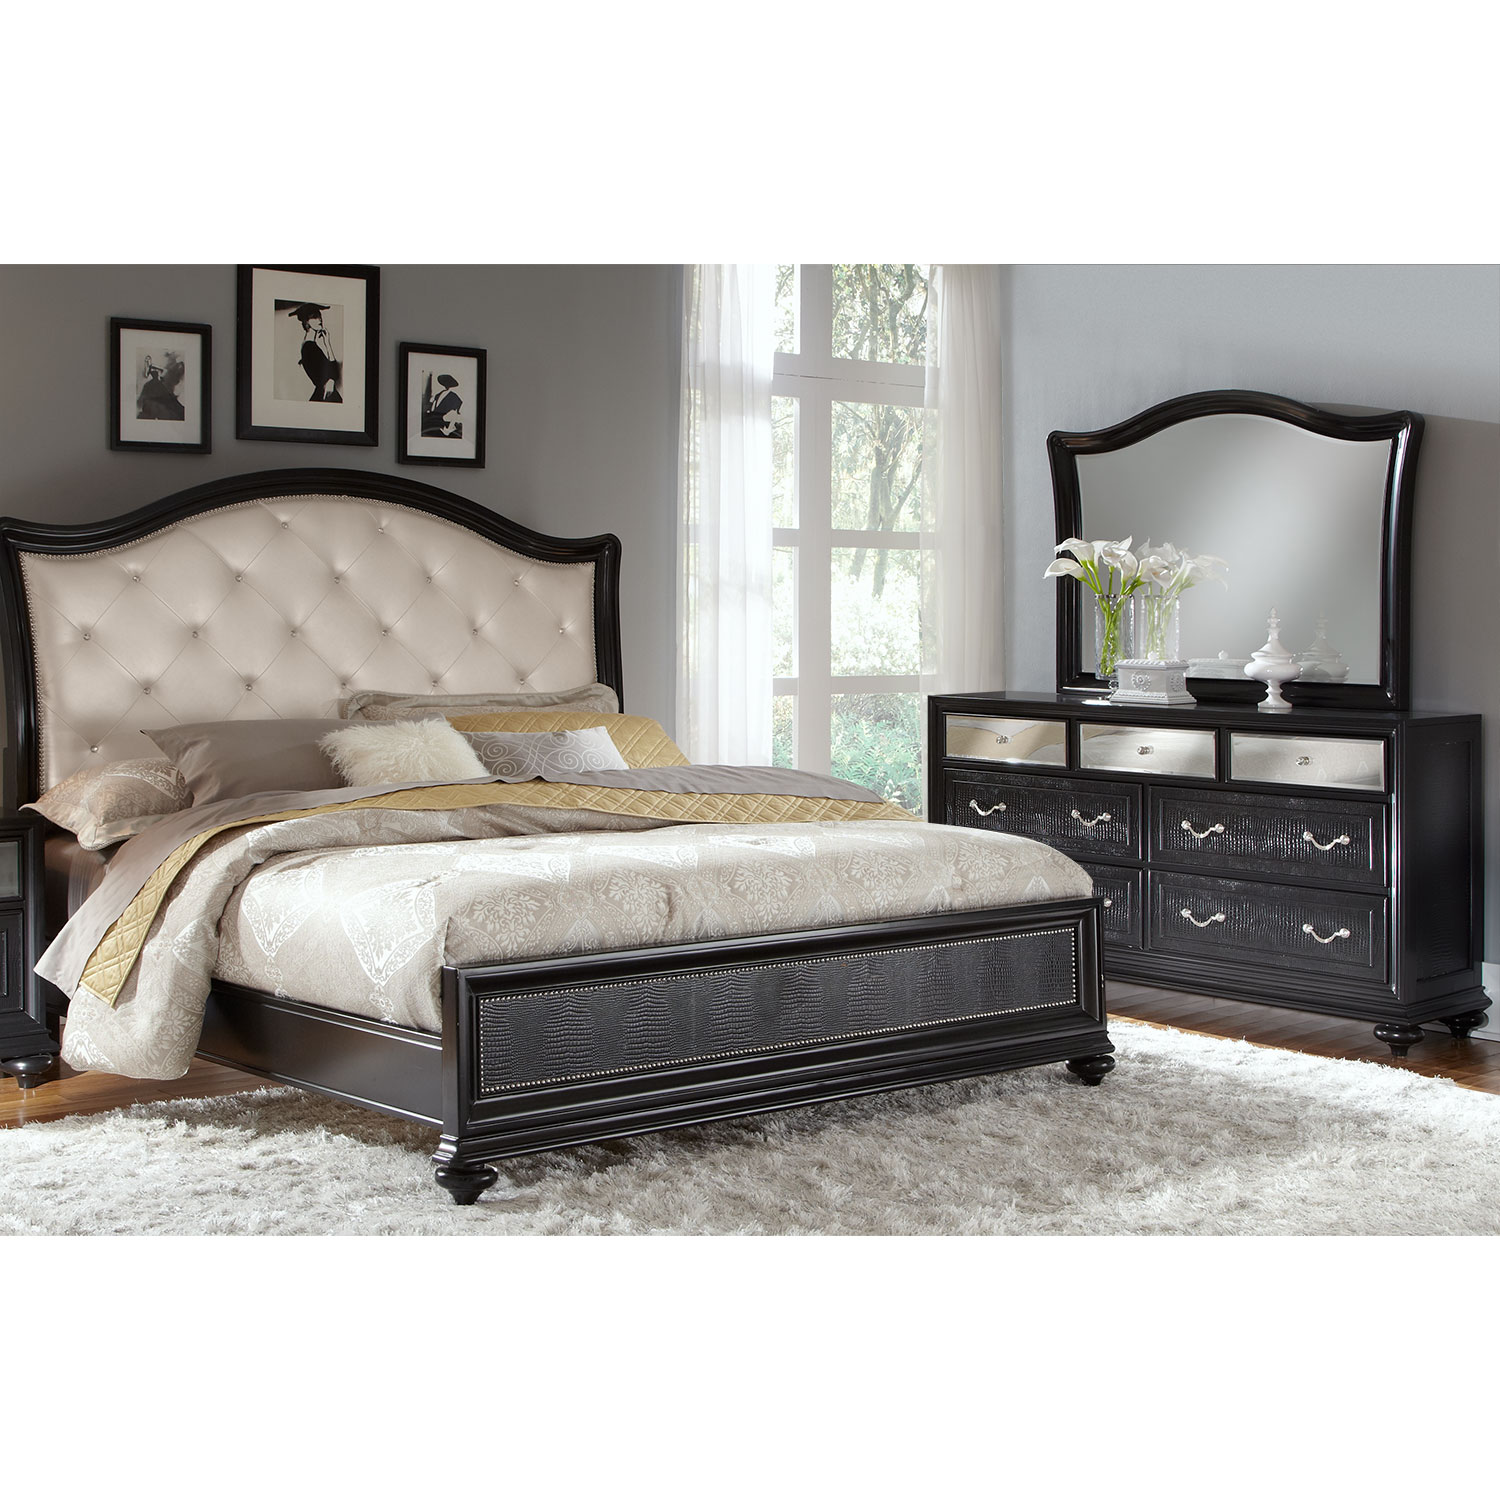 Marilyn 5 Piece Queen Bedroom Set Ebony